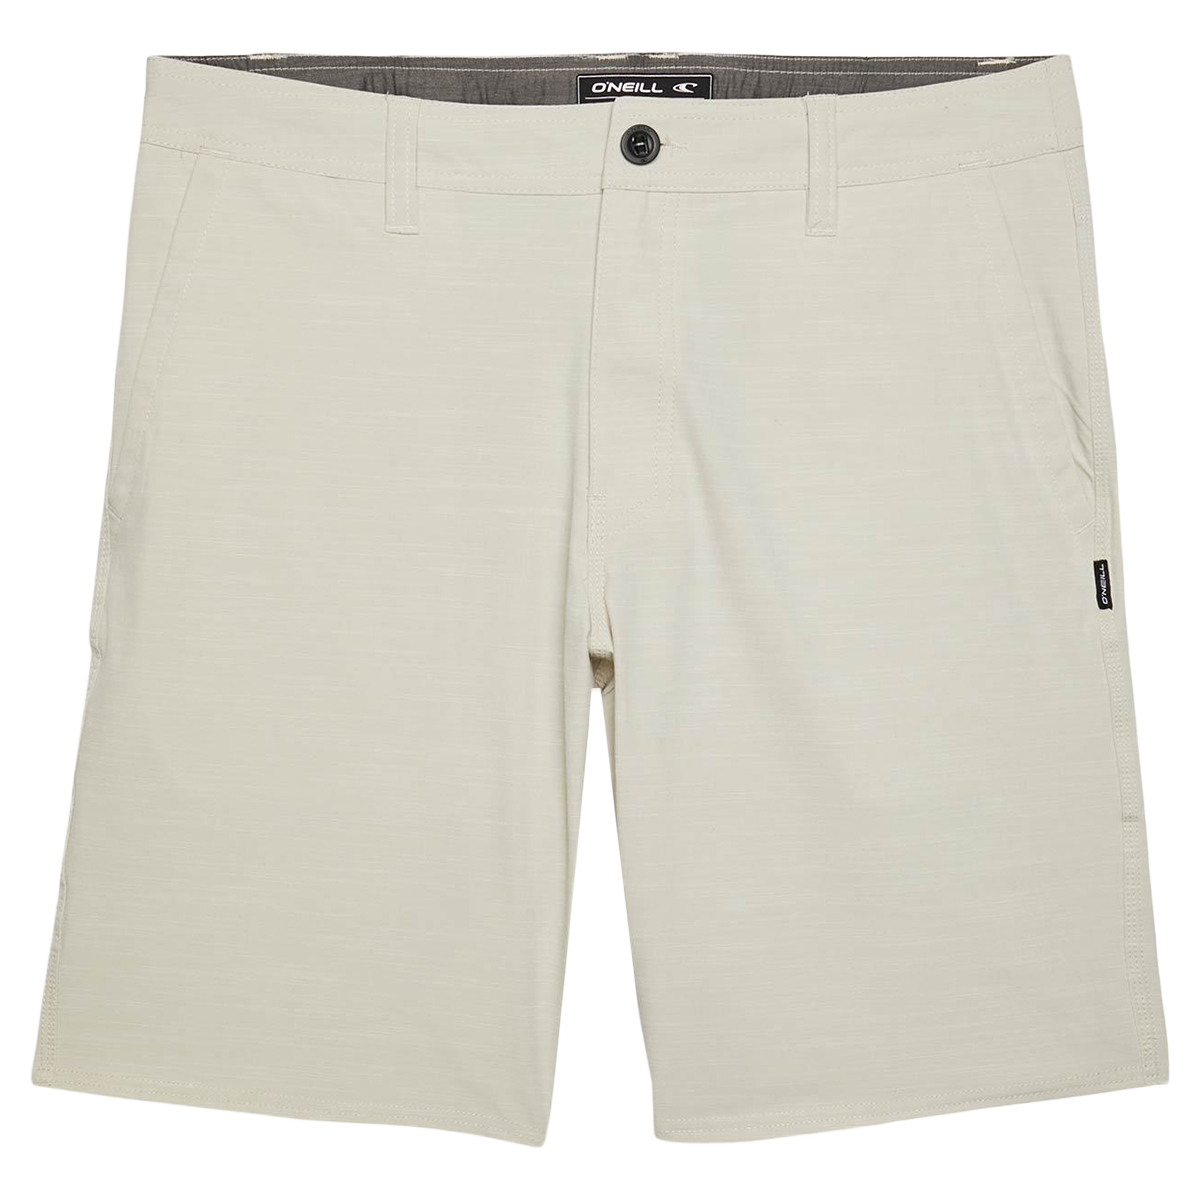 O'neill Men's Locked Slub Shorts - Brown, 36